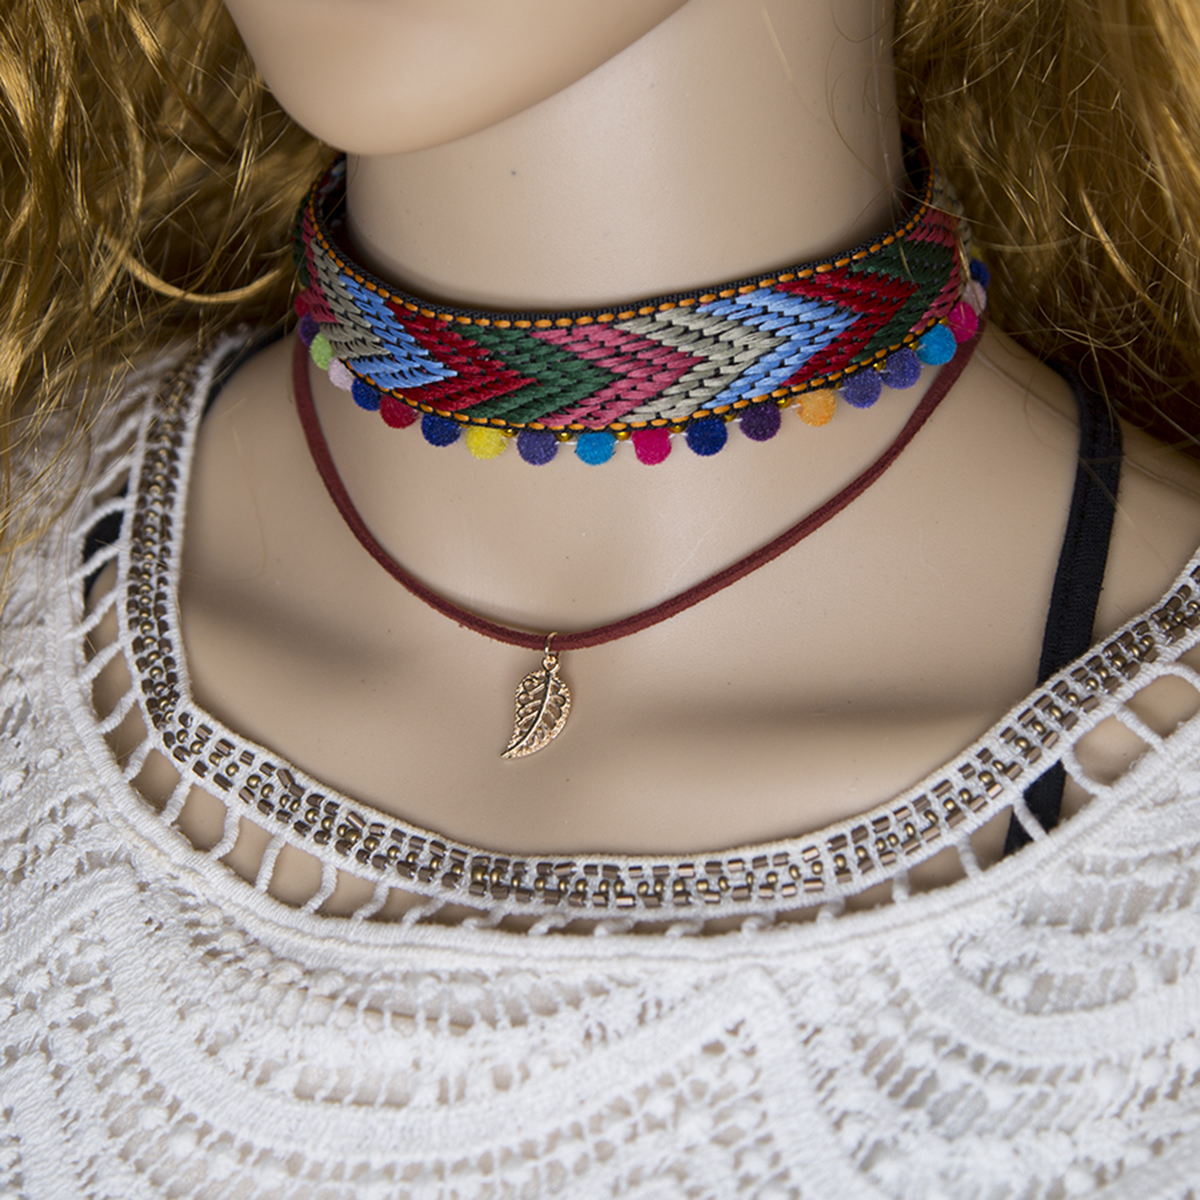 Ethnic Women Chain Leaf Pendant Necklaces Bohemian Woven Cloth Leather Rope Collar Choker Necklace Femme Jewellery Shellahrd